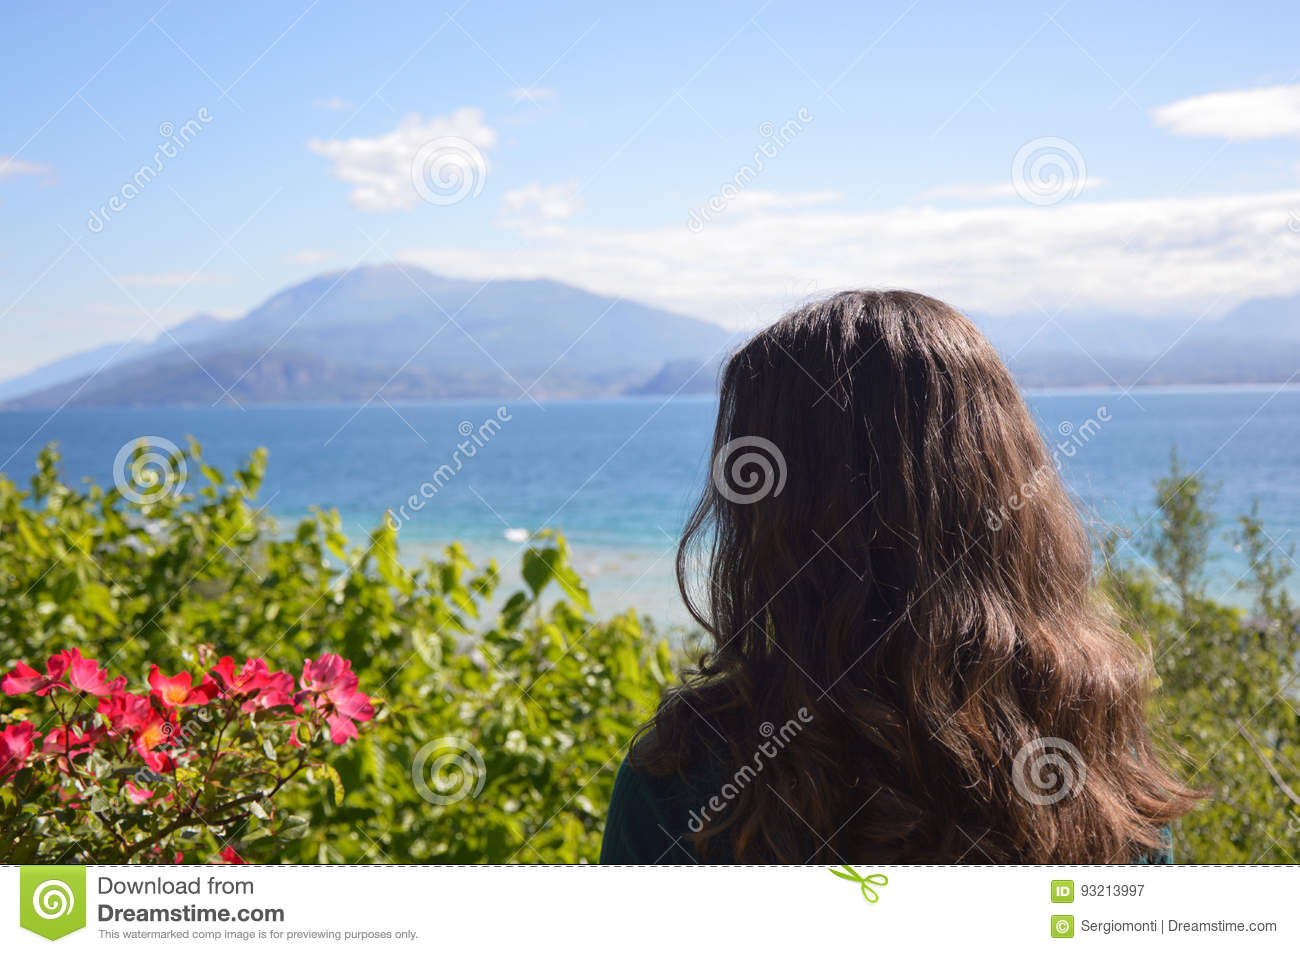 Beautiful girl posing back with natural lake mountains landscape with flowers and trees, woman model in nature